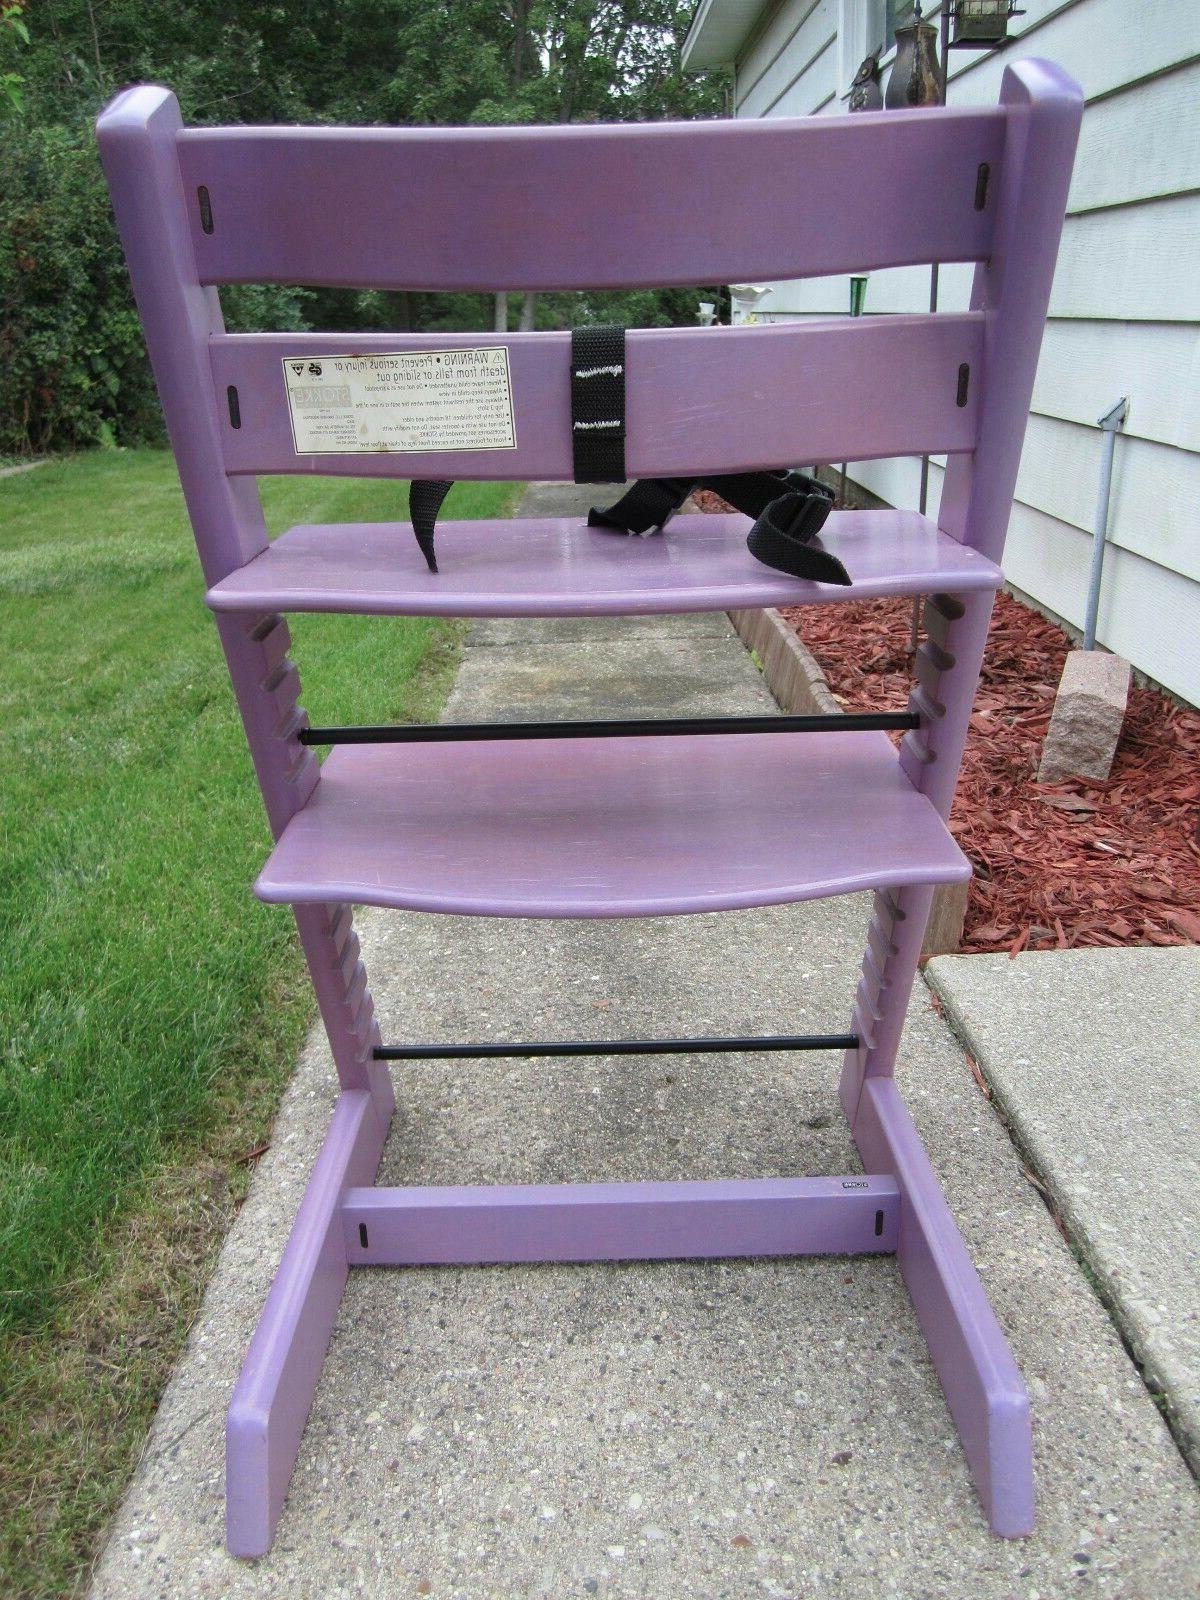 Authentic Stokke Trapp High Chair~Purple/Lavender color